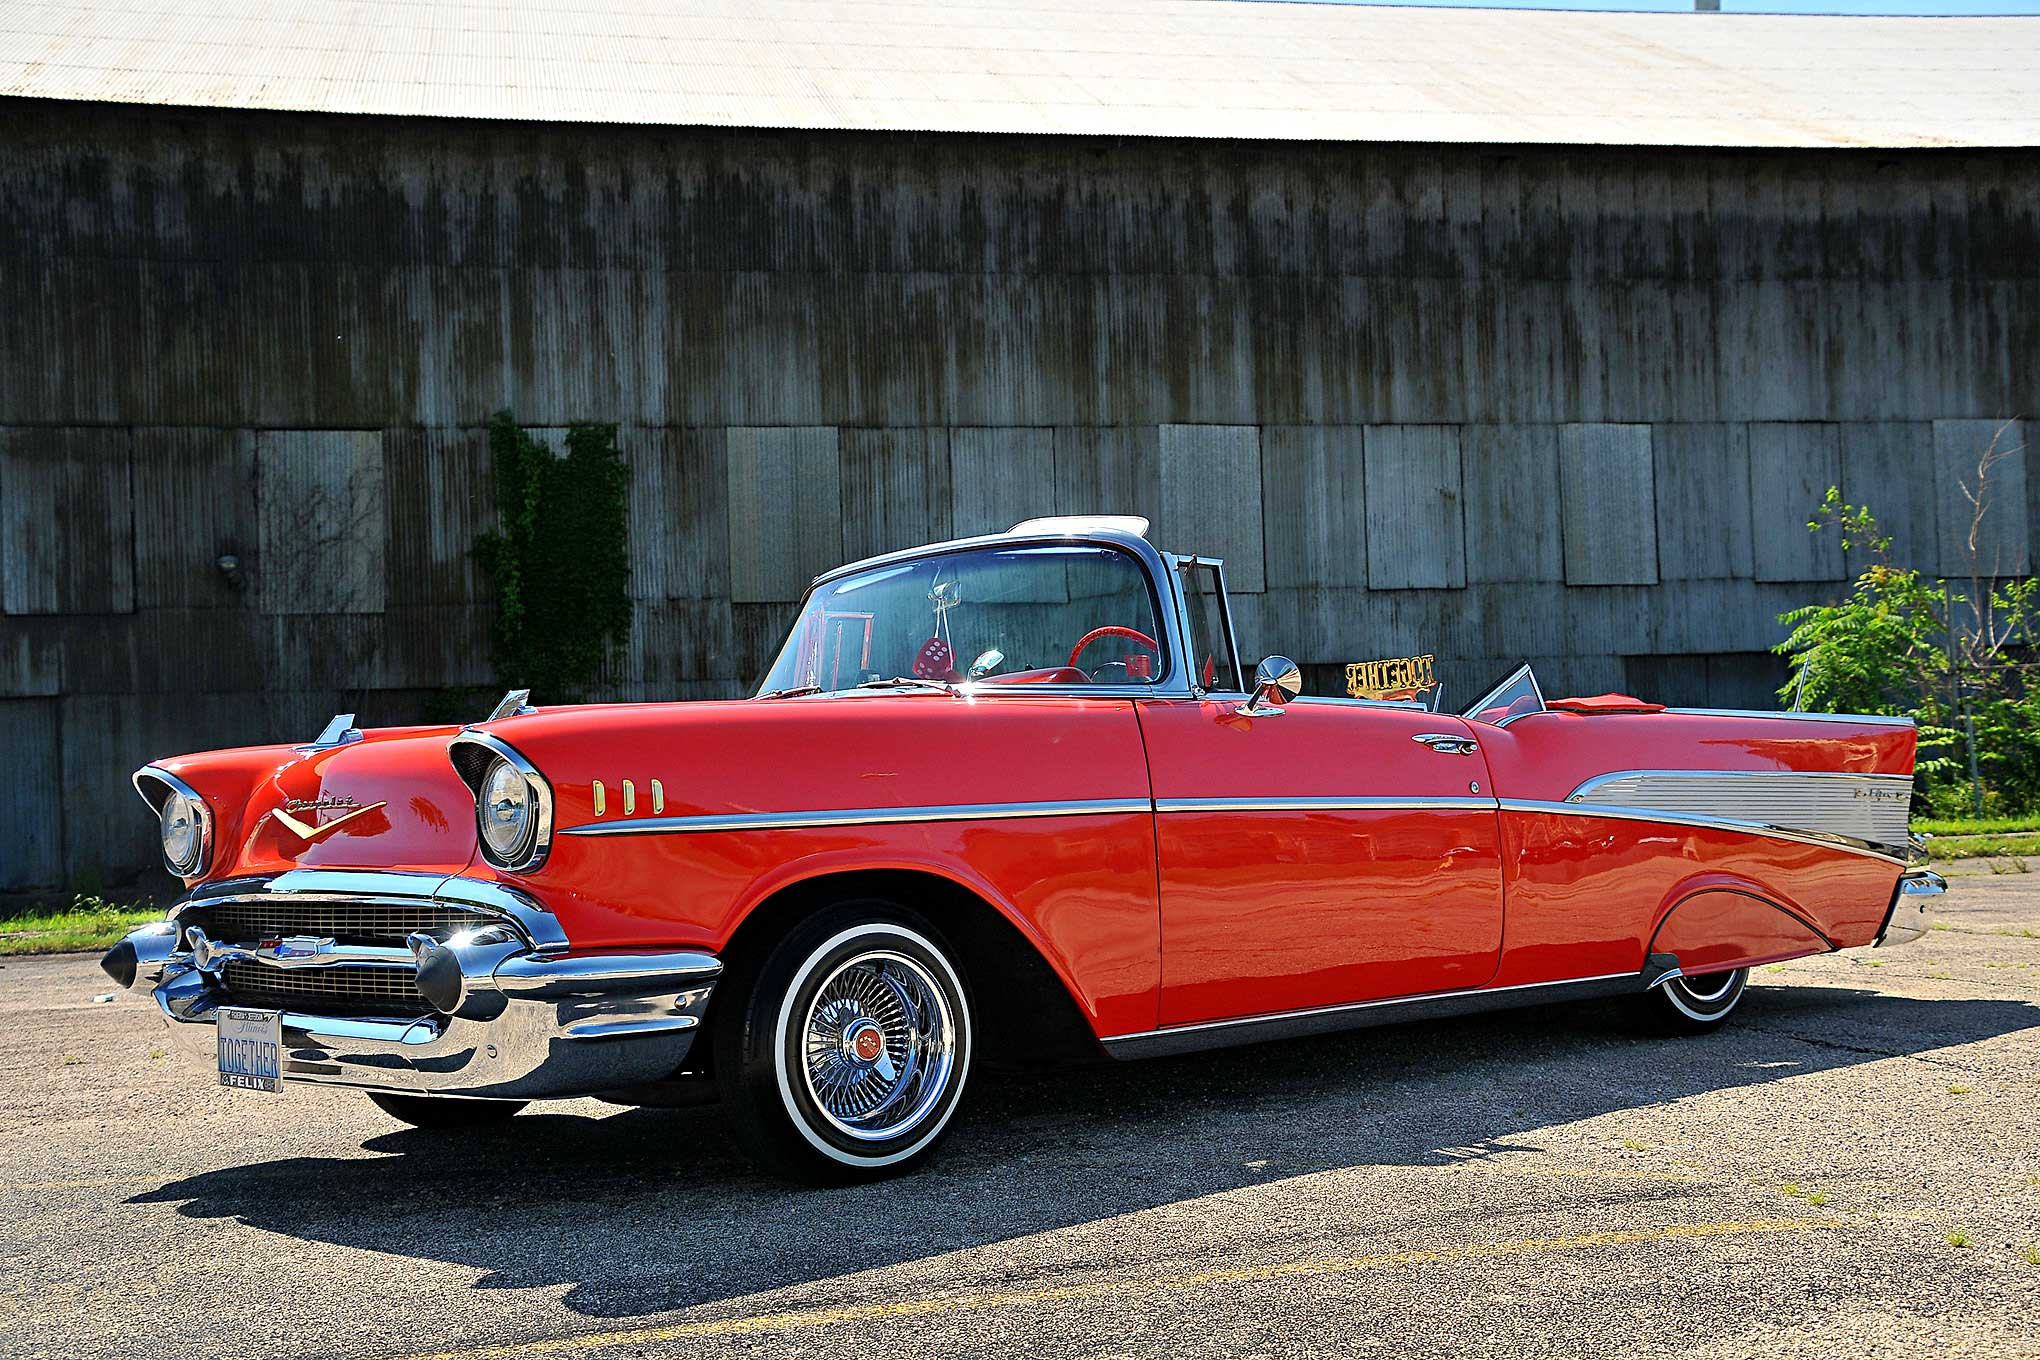 1957 Chevrolet Bel Air - Game Changer 57